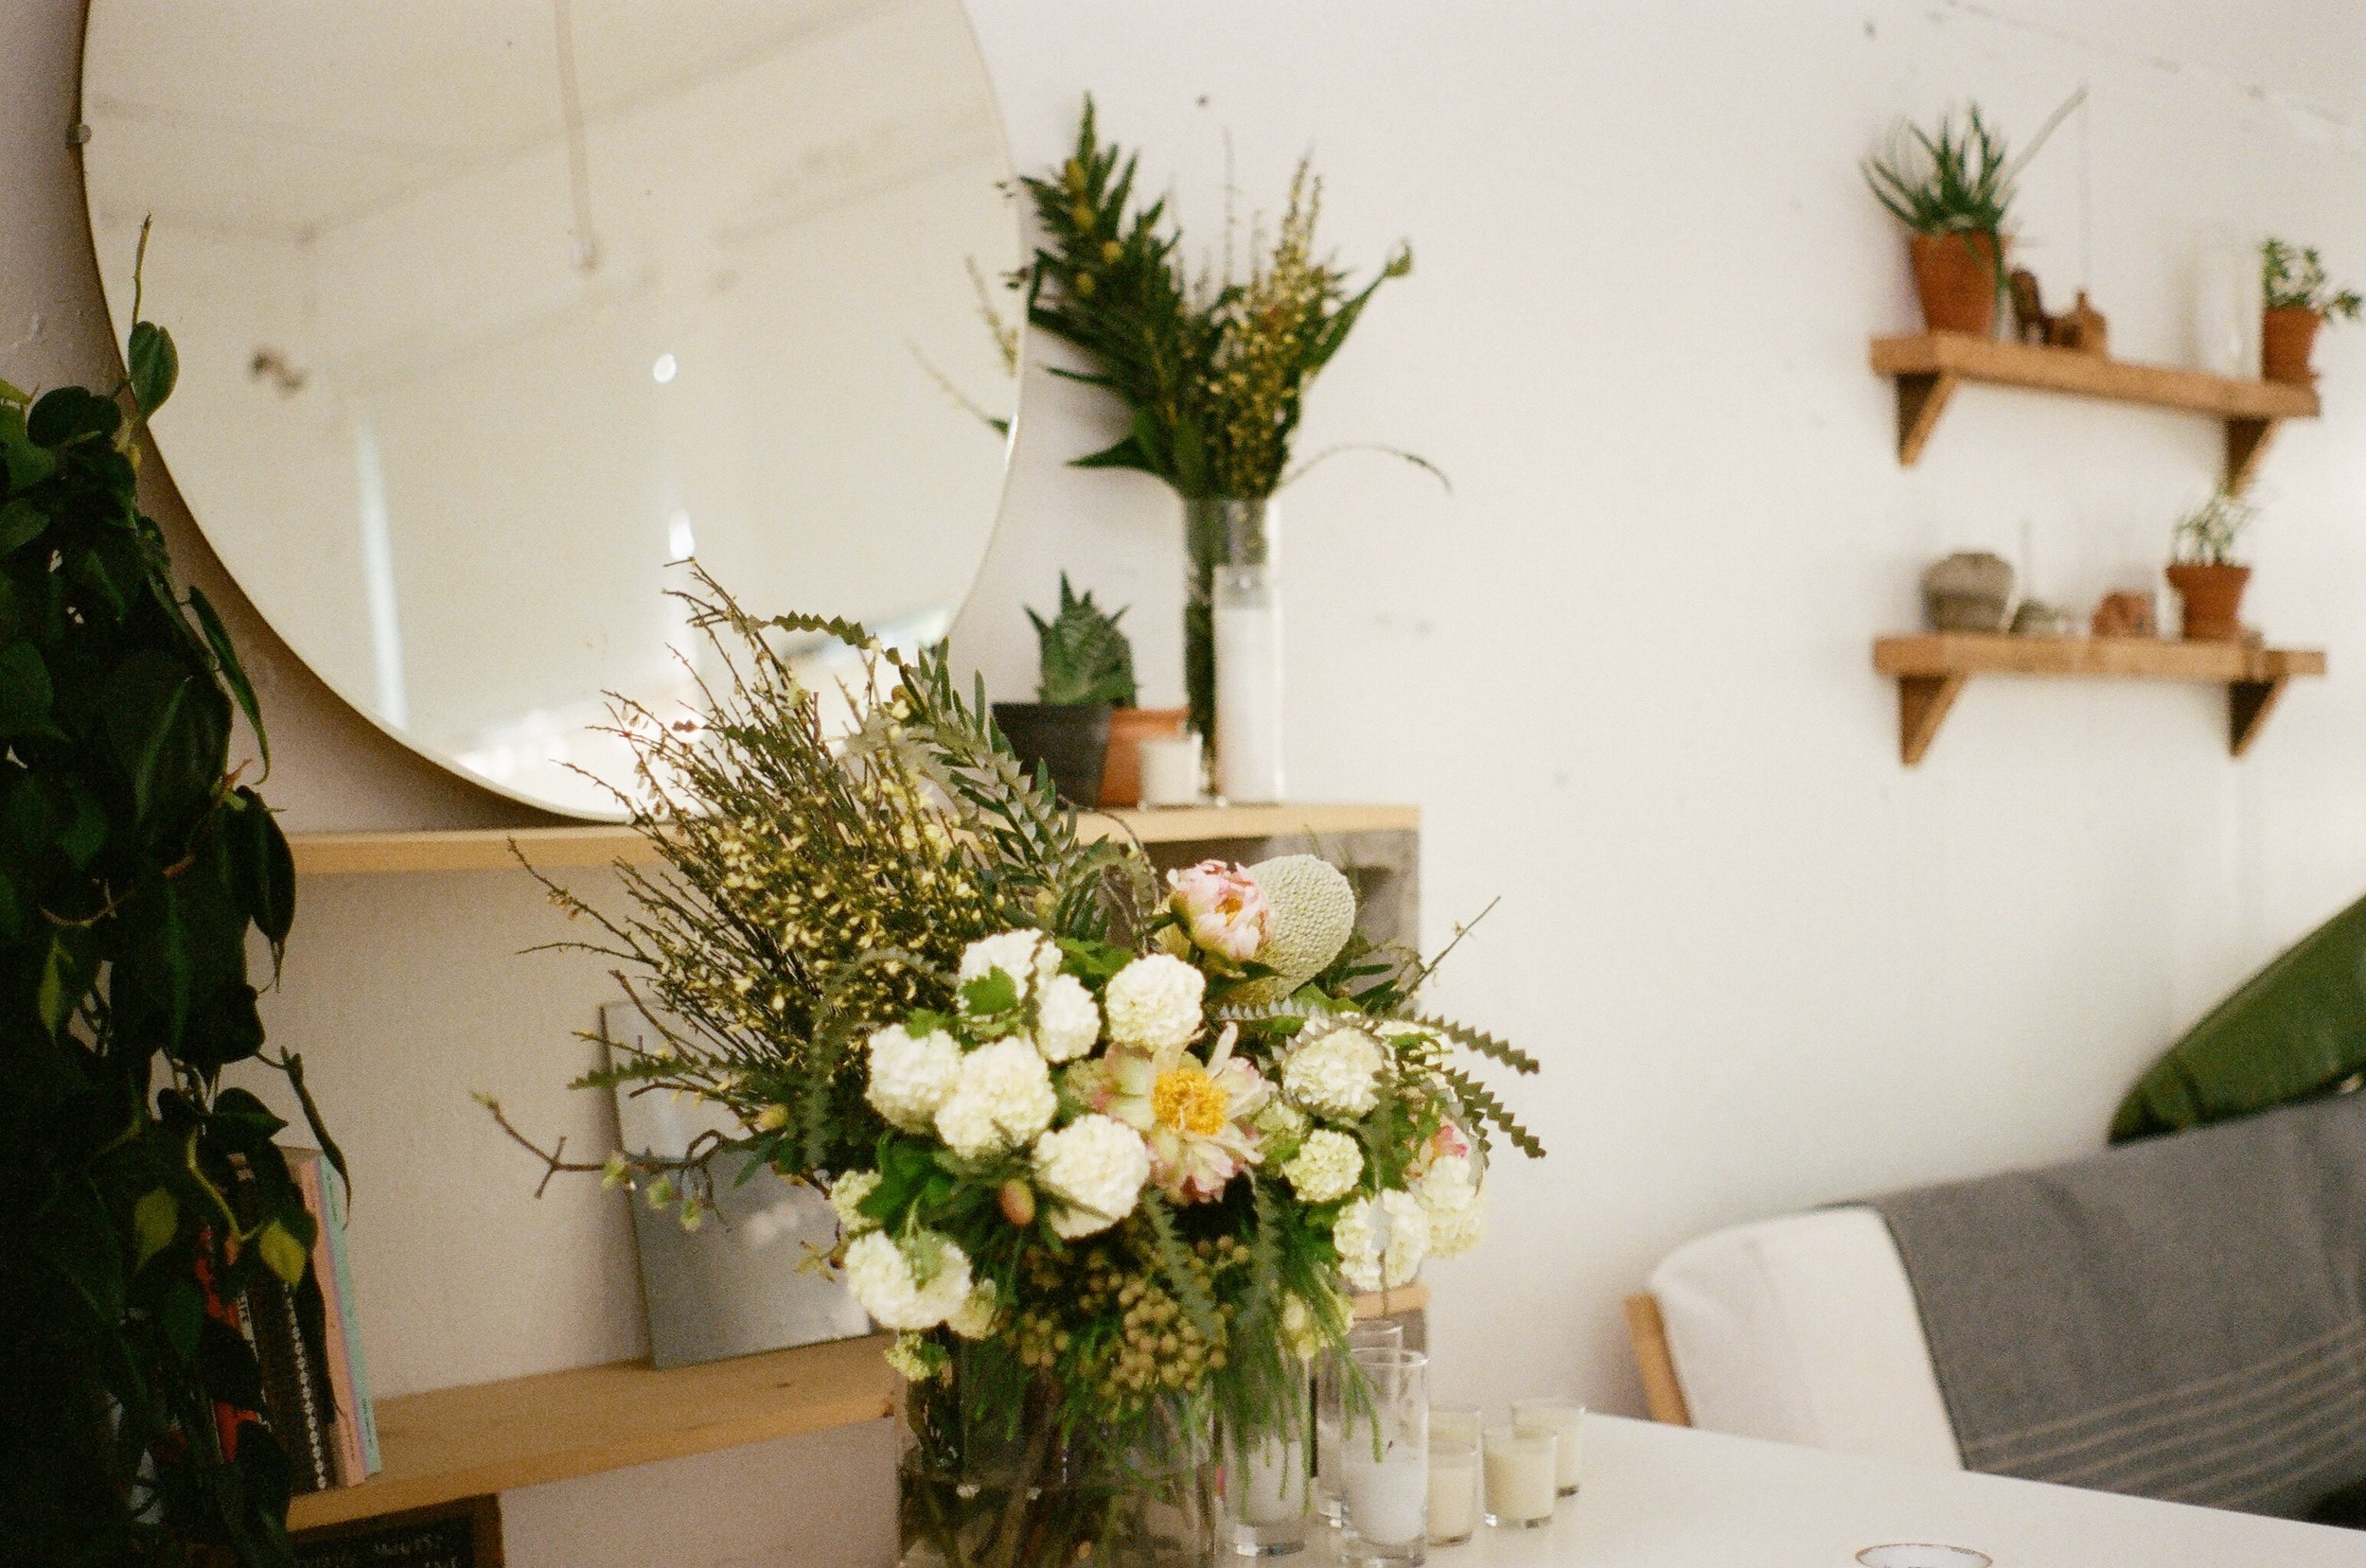 Flowers & styling for a wedding rehearsal dinner.